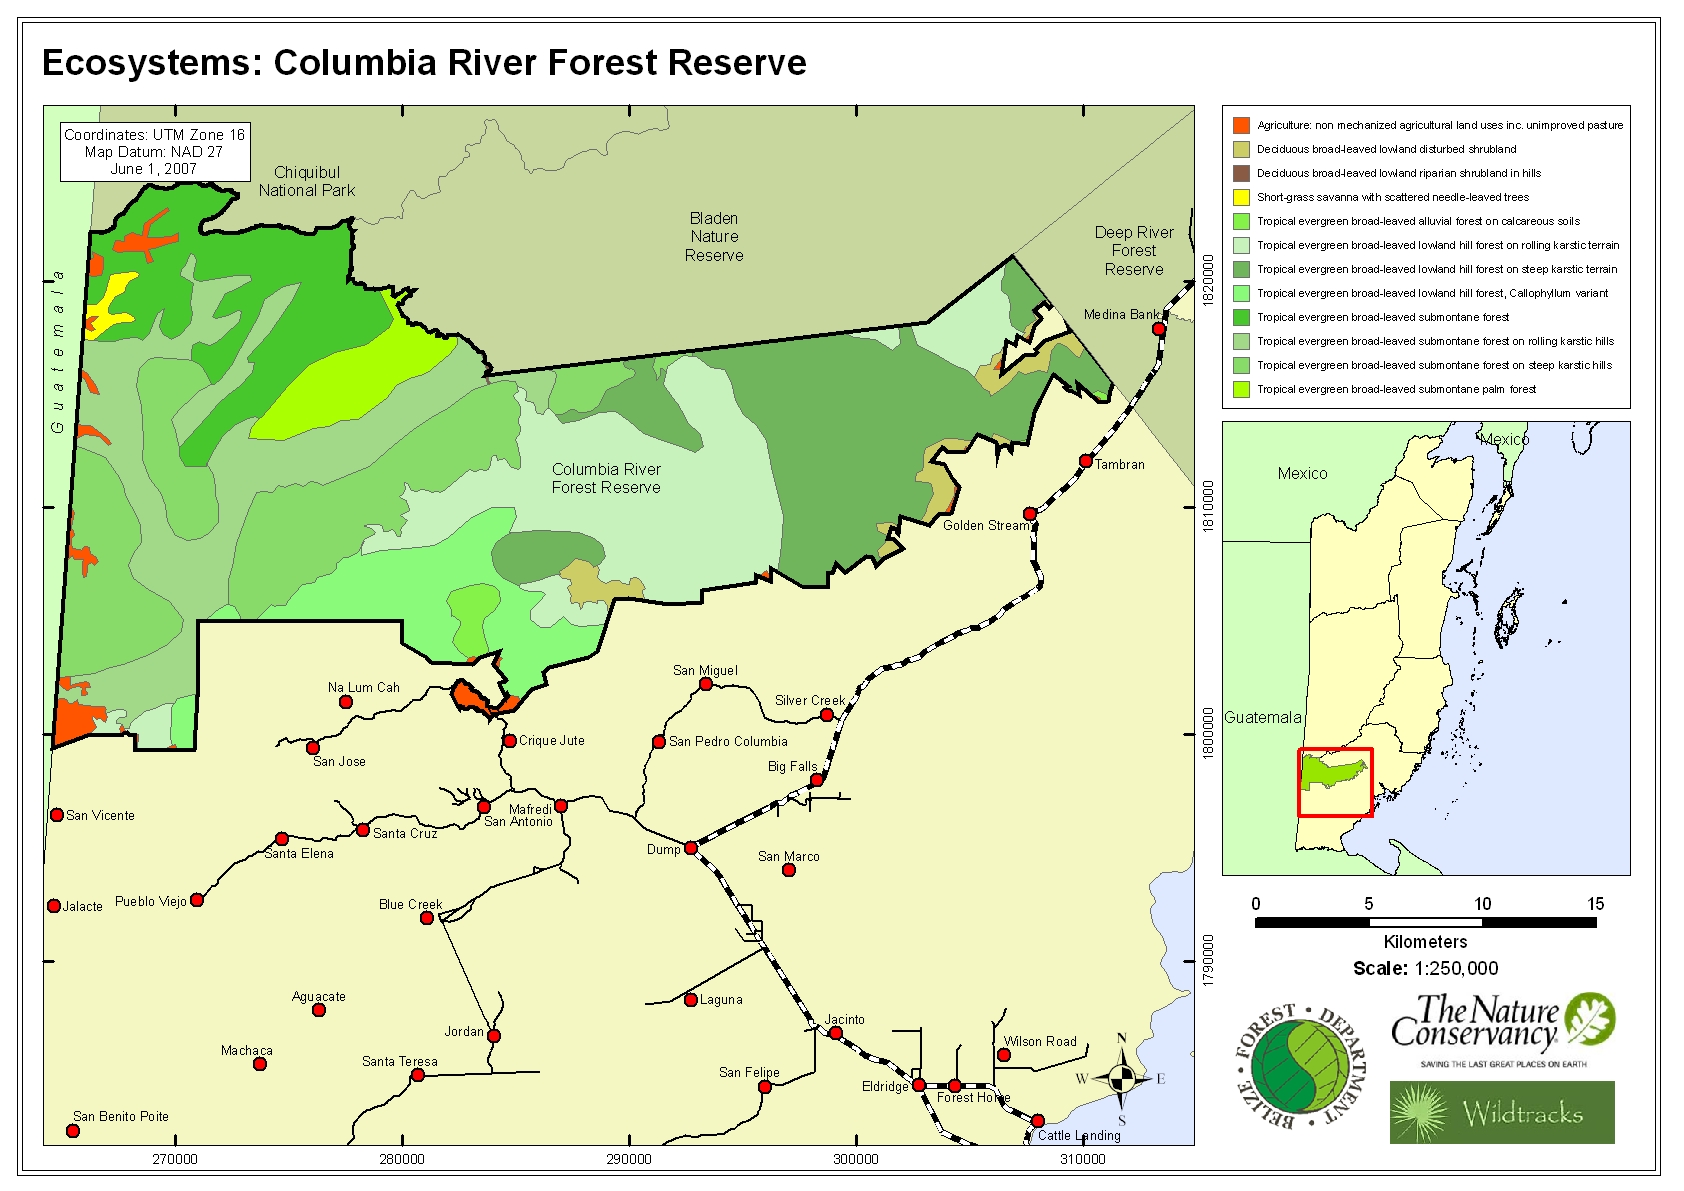 Ecosystems: Columbia River Forest Reserve